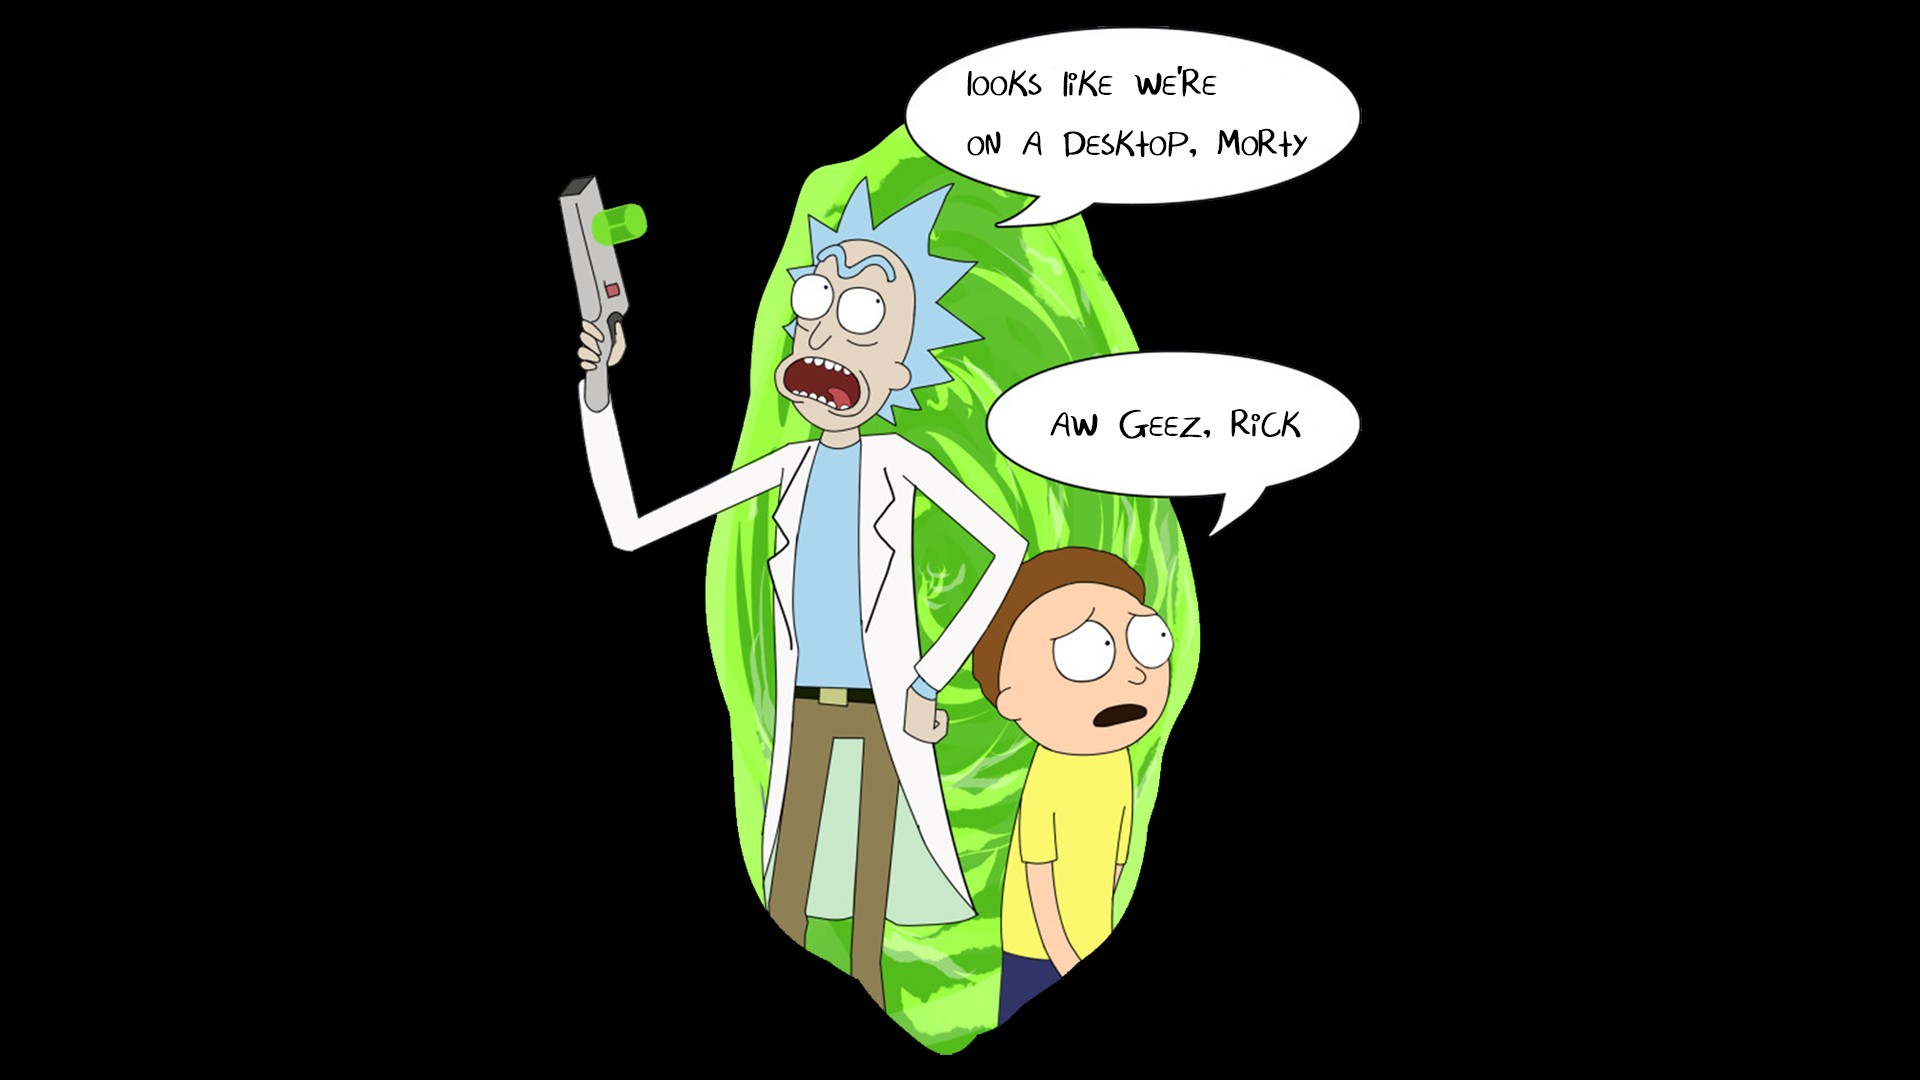 Rick And Morty Wallpaper 1 Download Free HD Wallpapers Of